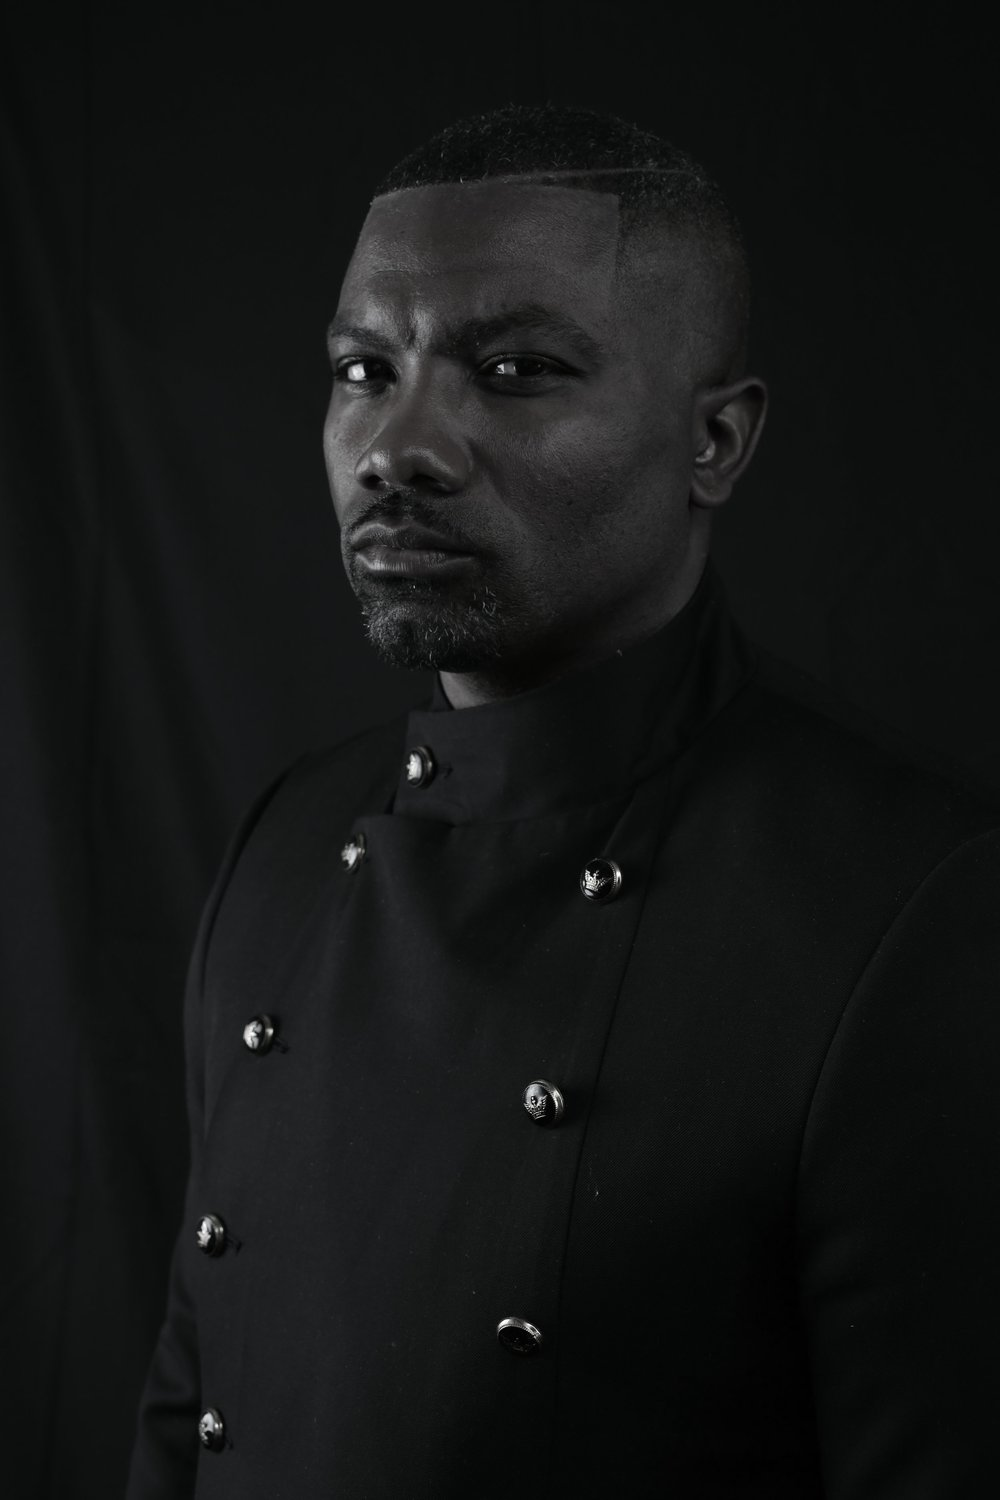 TRETRIMZ  - OWNER of TRIMZ&CO STYLING BARAARON DAVIS III KNOWN AS TRE TRIMZ IS AN EXPERIENCED AWARD WINNING Groomer.